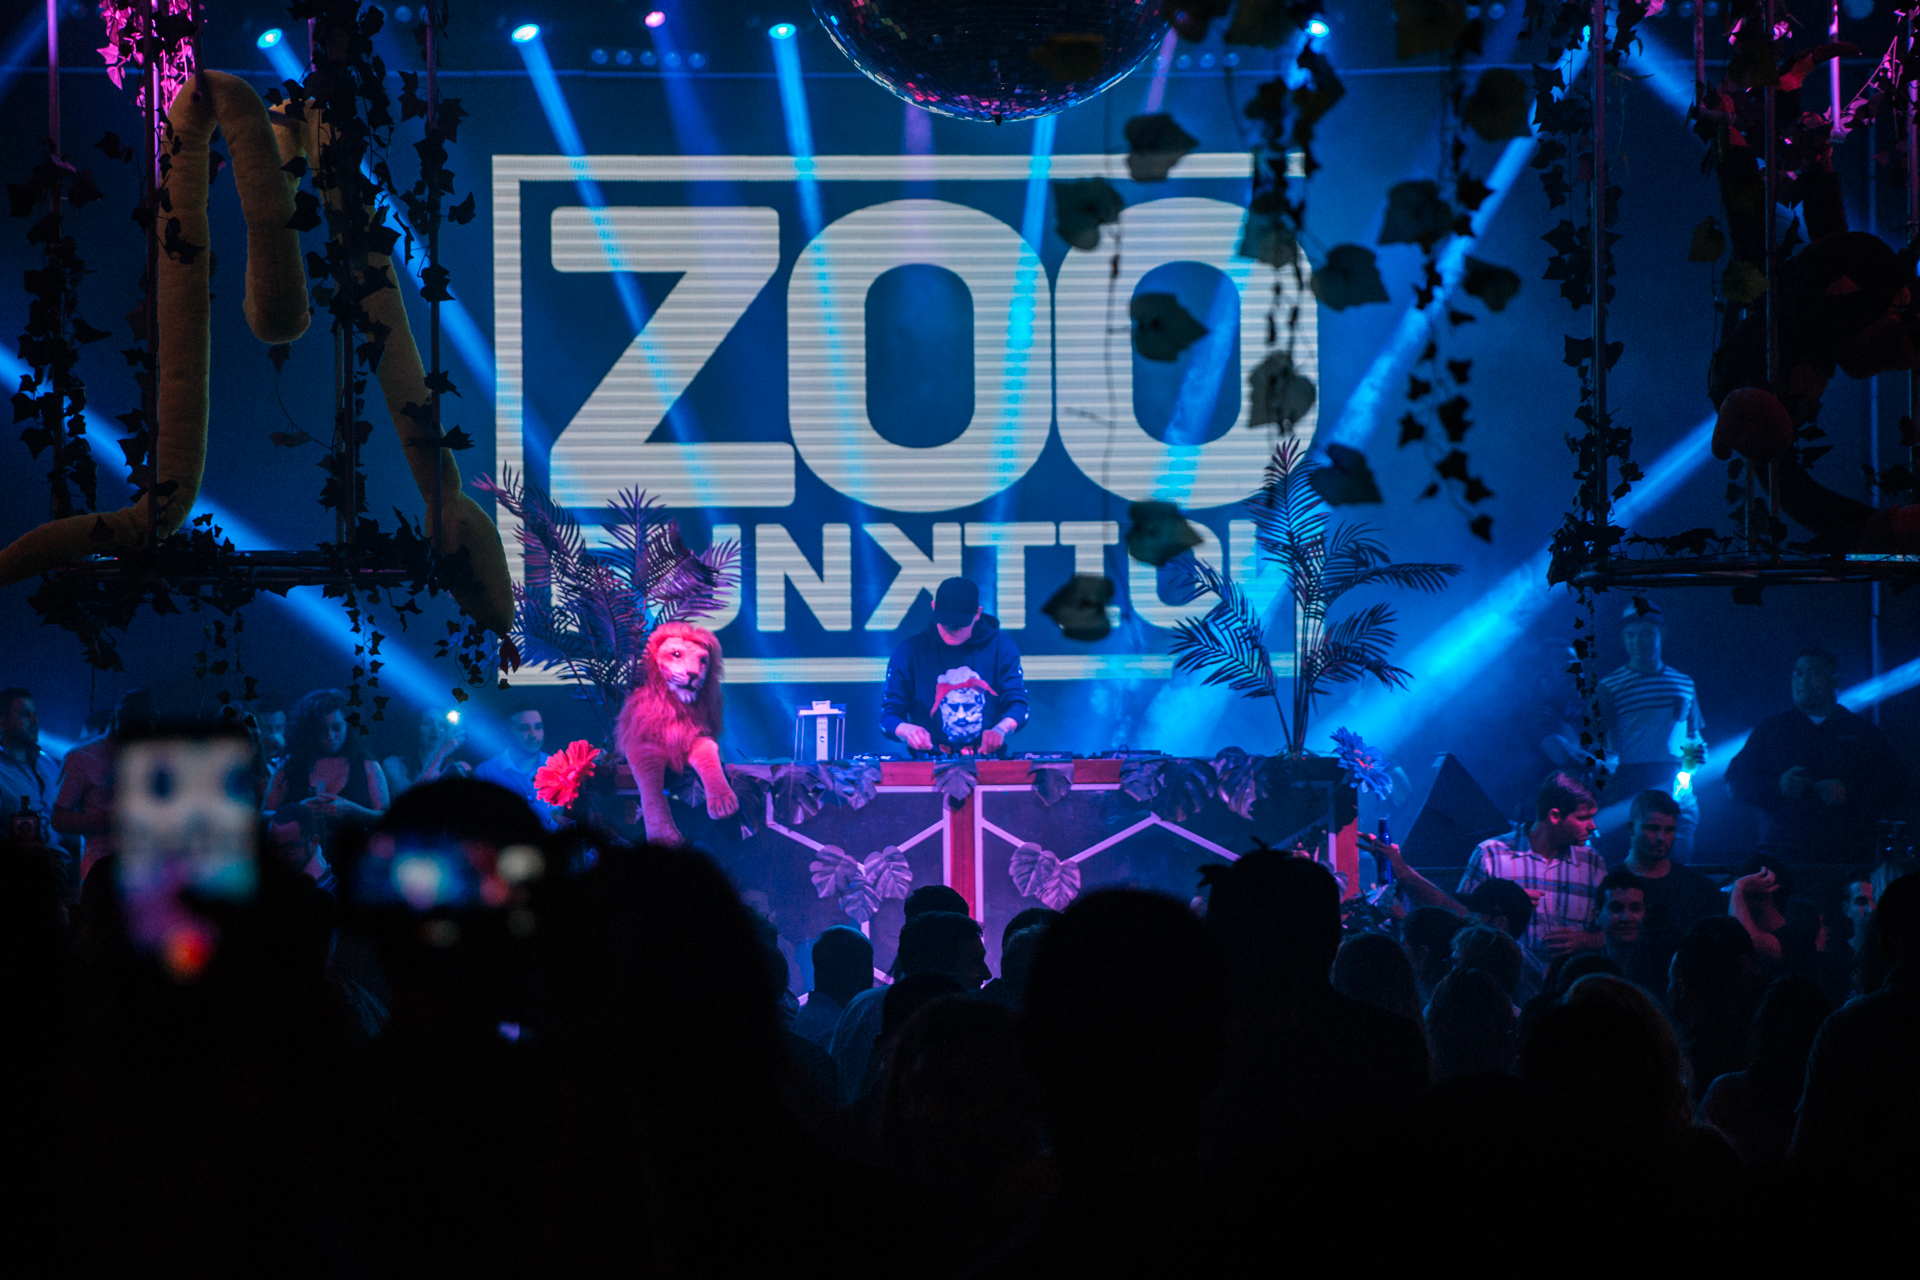 06.24.17 Zoo Funktion--1.jpg